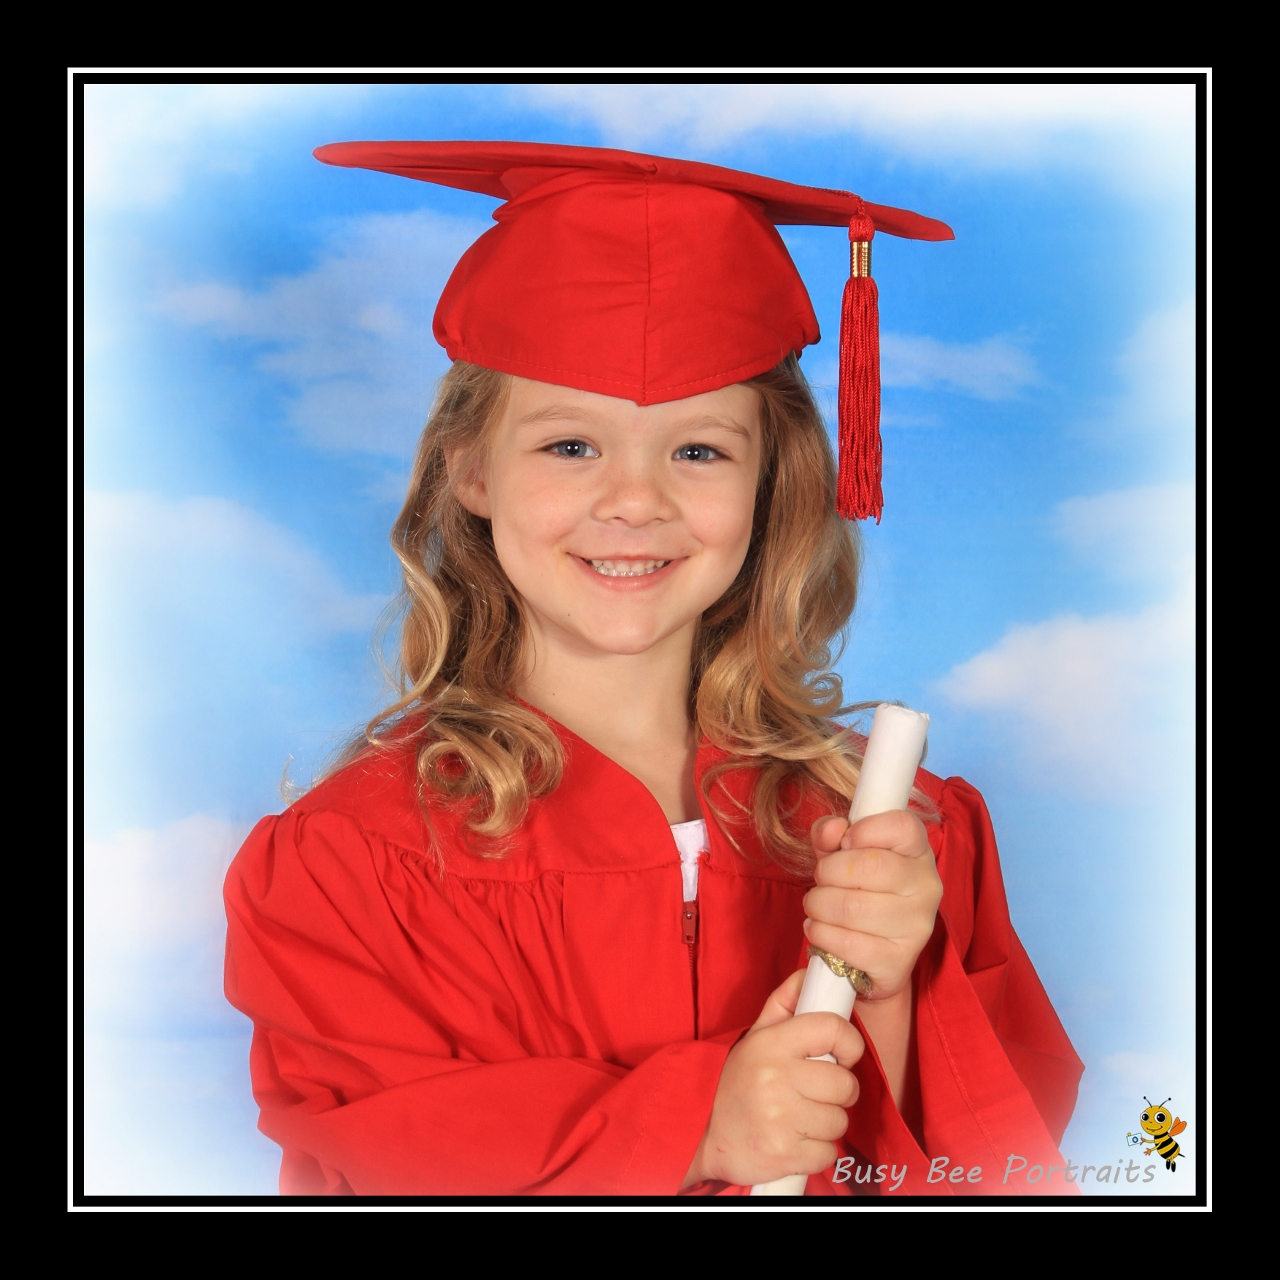 Preschool Graduation Photos Archives - BUSY BEE PORTRAITS BUSY BEE ...